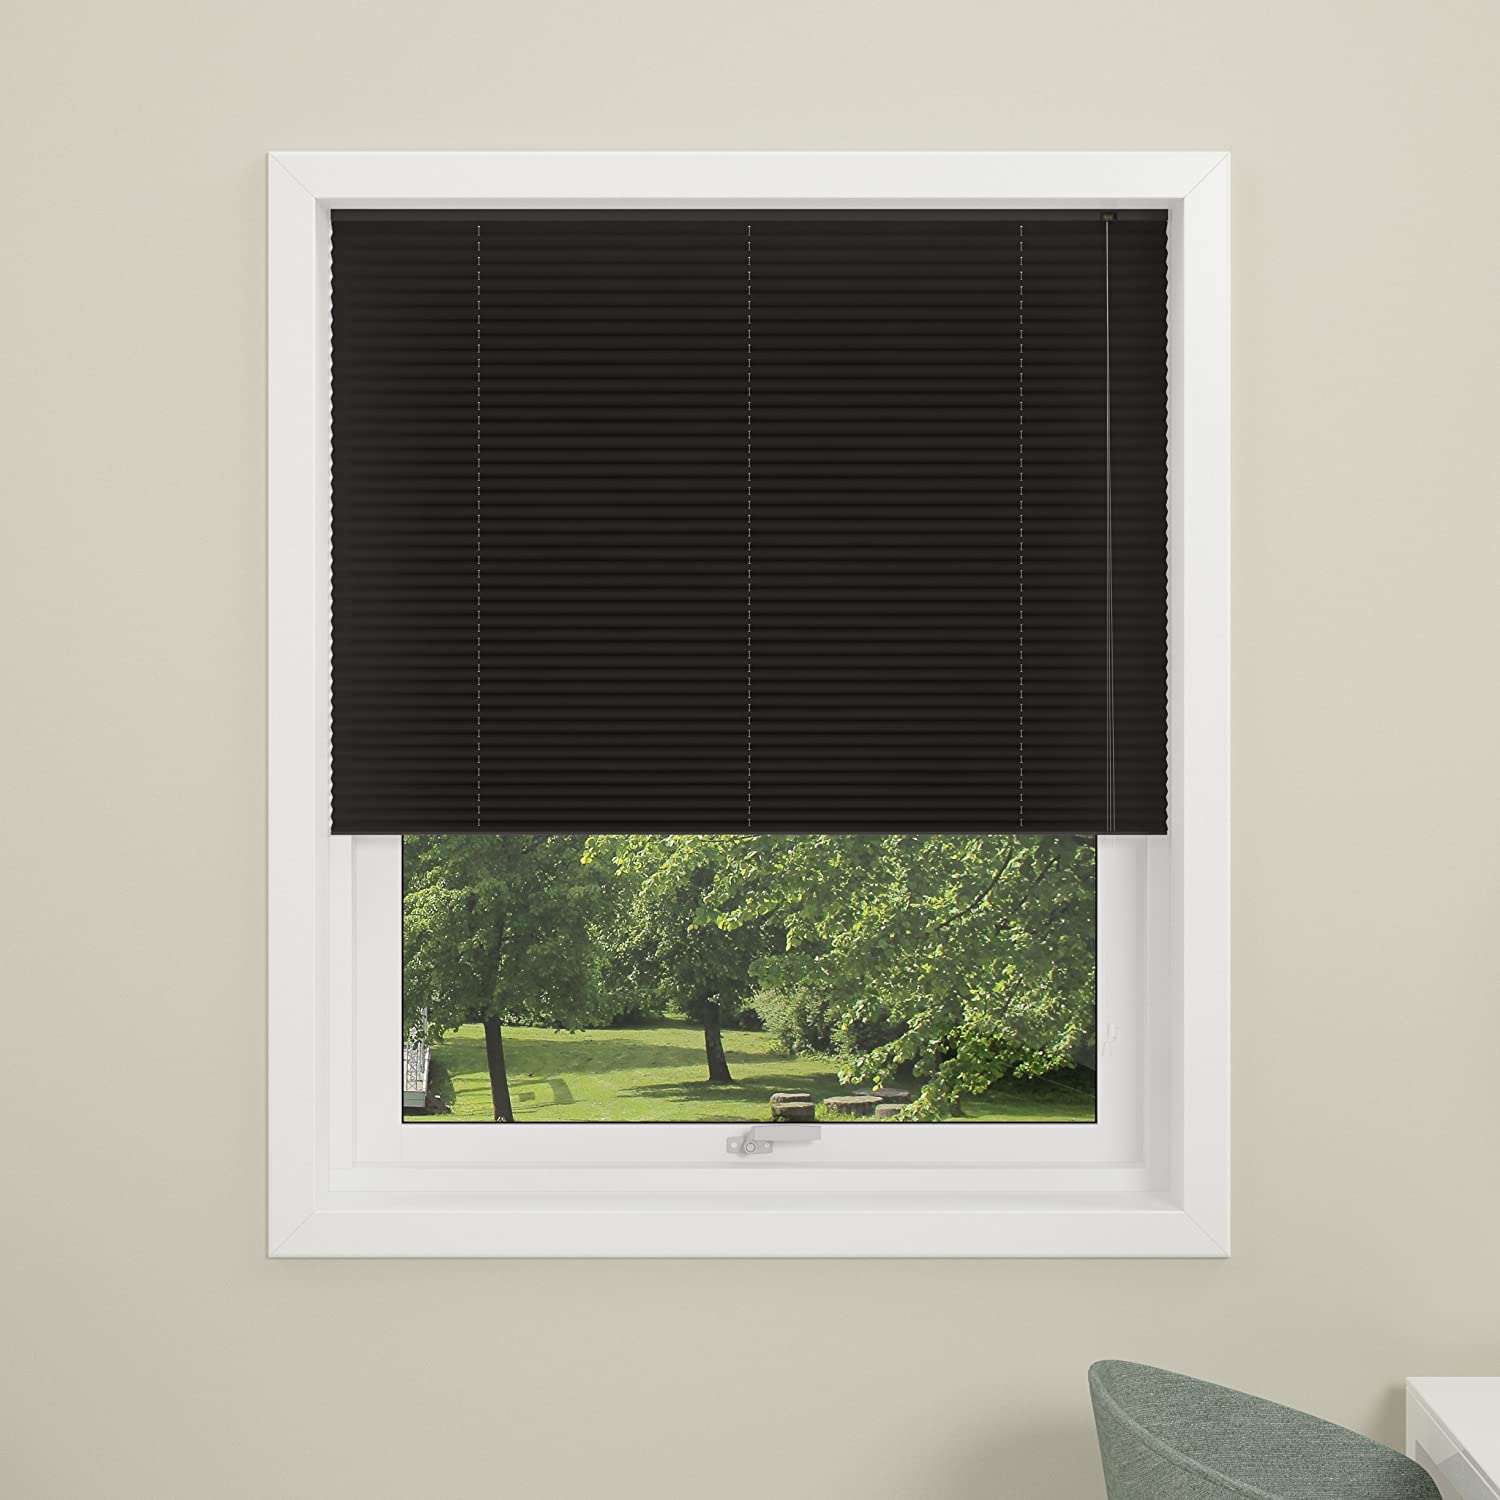 DEBEL 60 x 130 cm 100 Percent Polyester London Pleated Blind, Black DECO GROUP 741800059